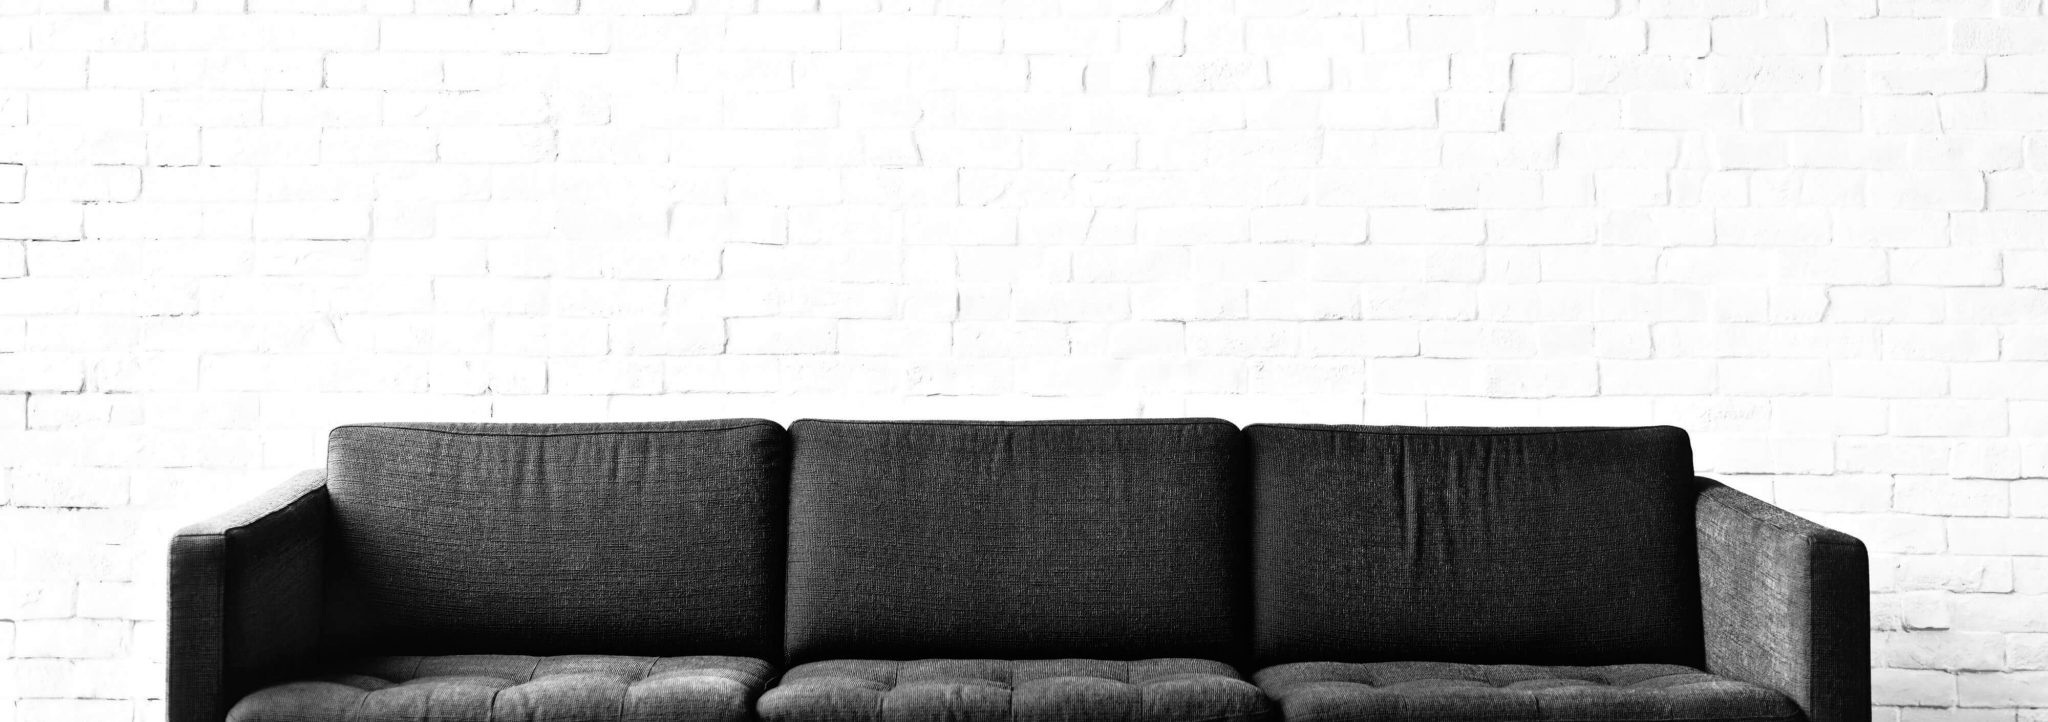 Couch with blank wall